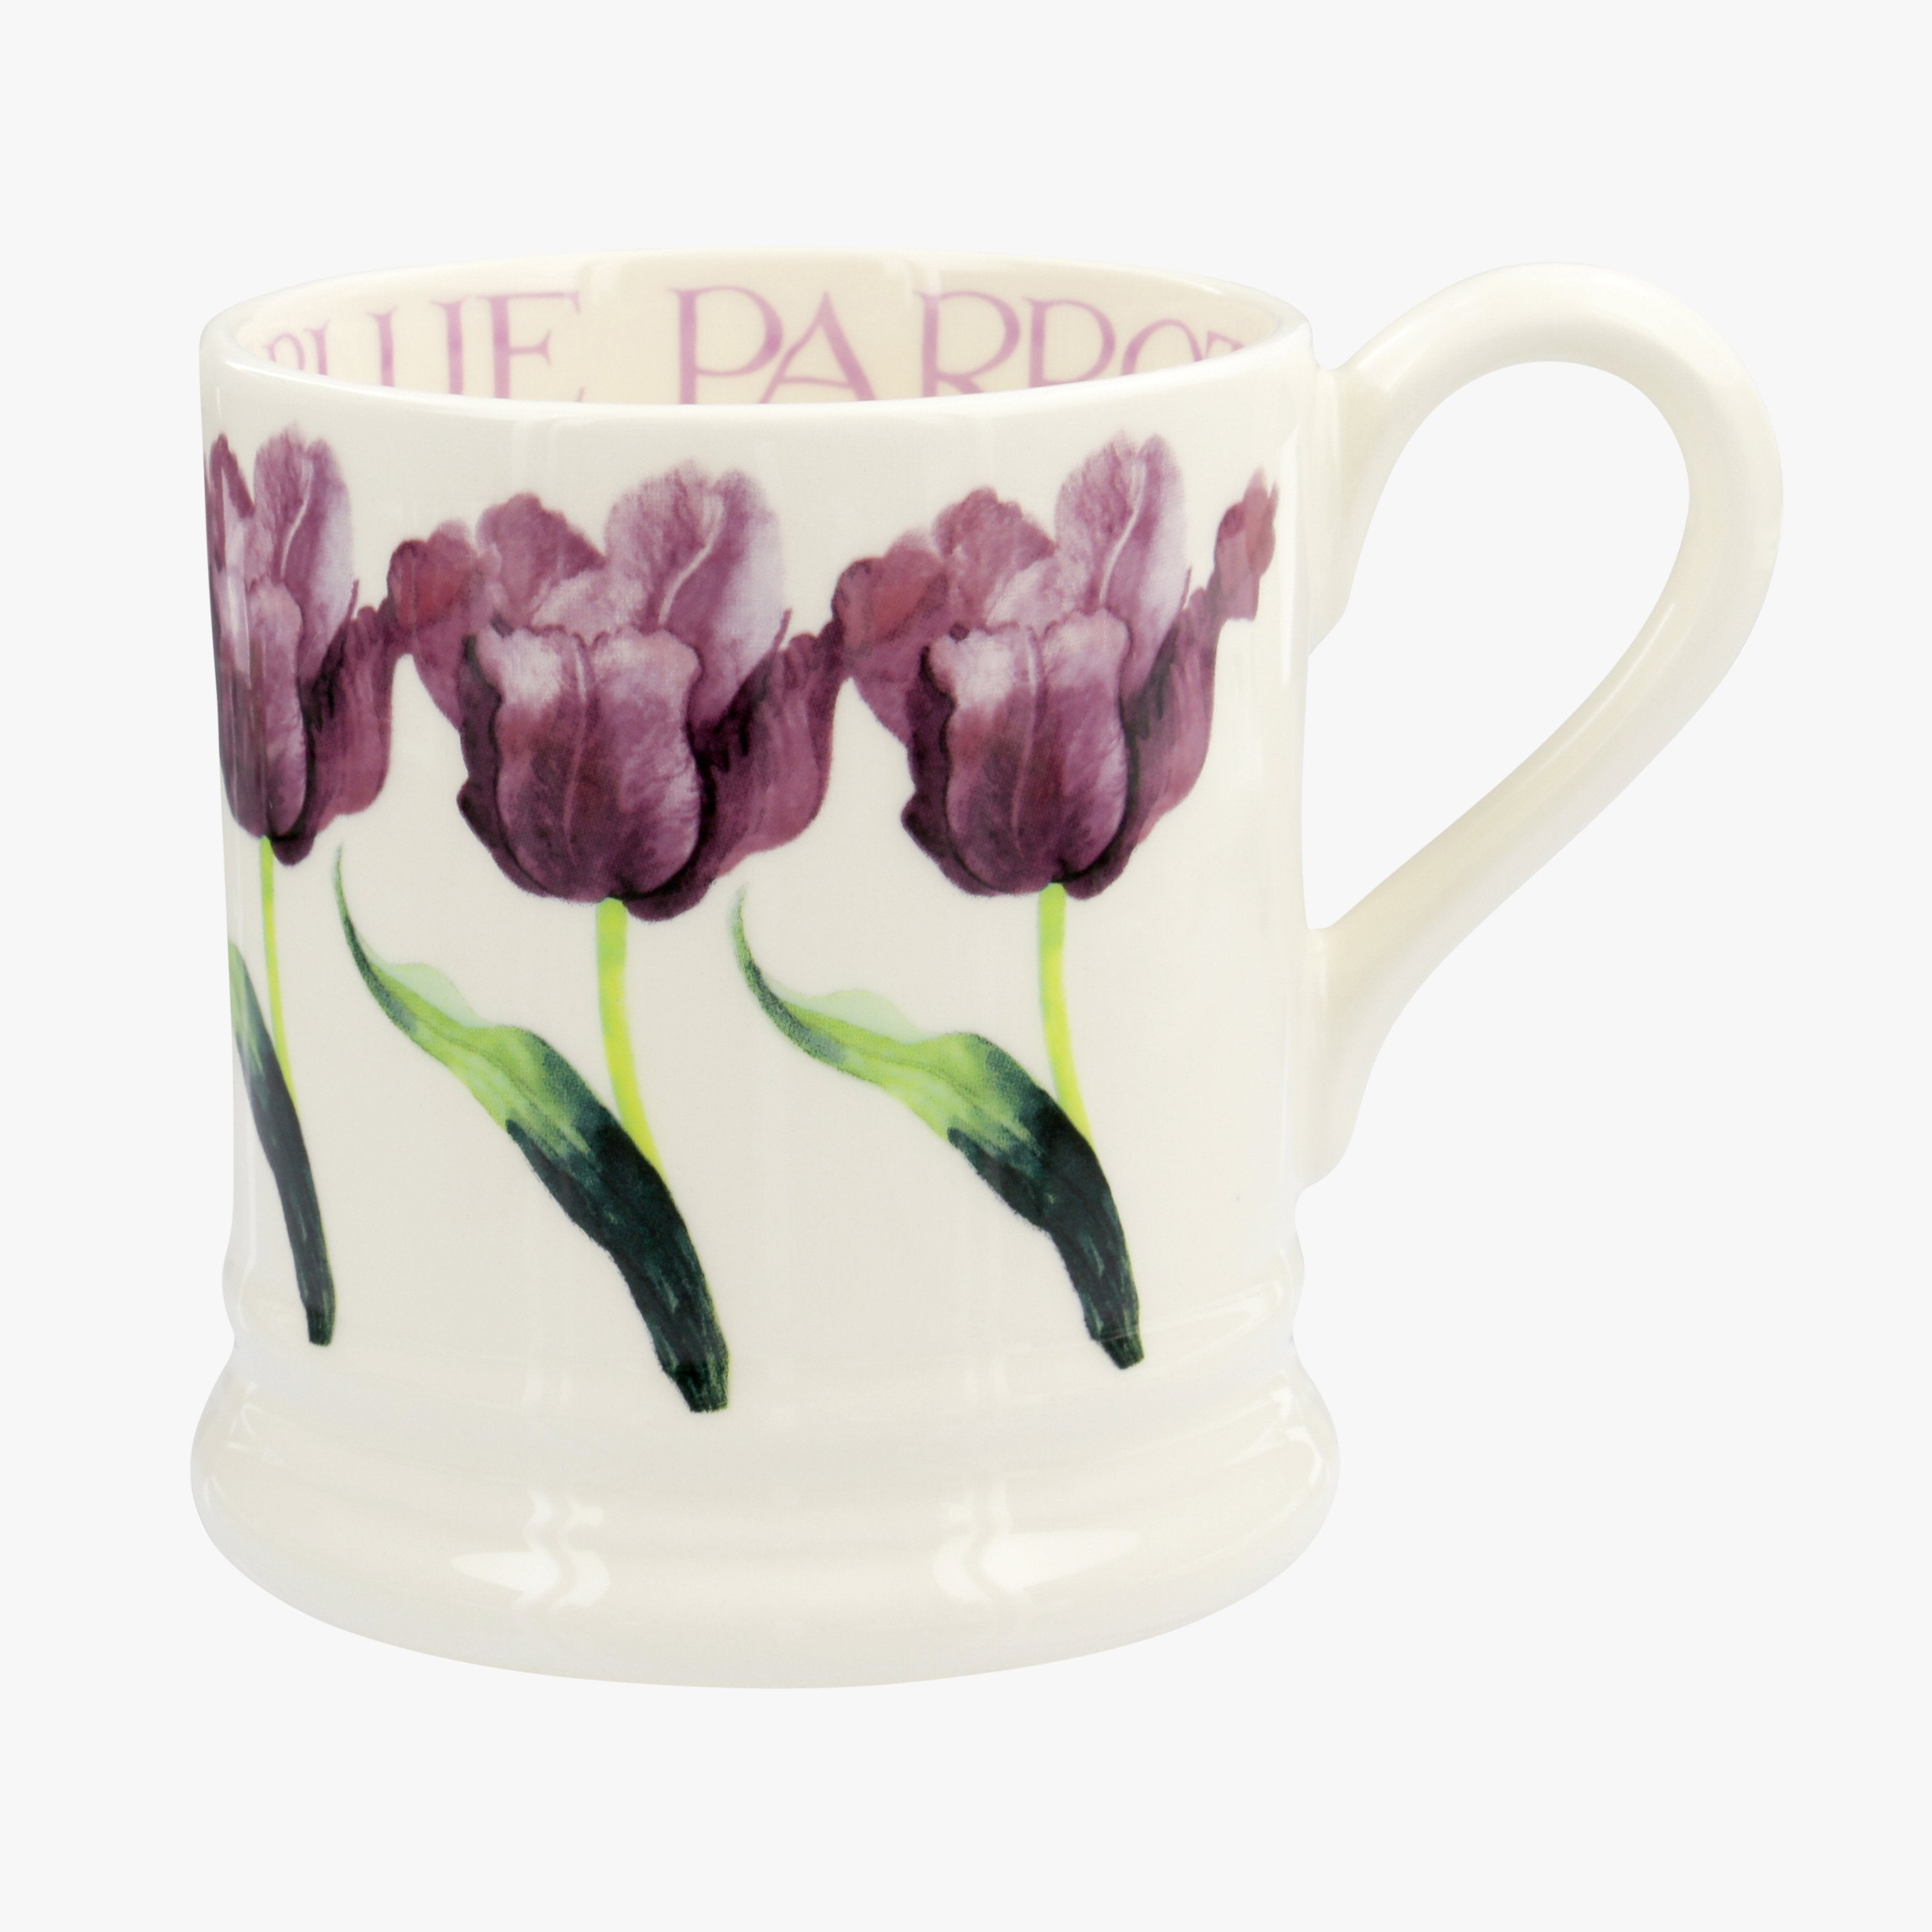 Image of Blue Parrot Tulip 1/2 Pint Mug